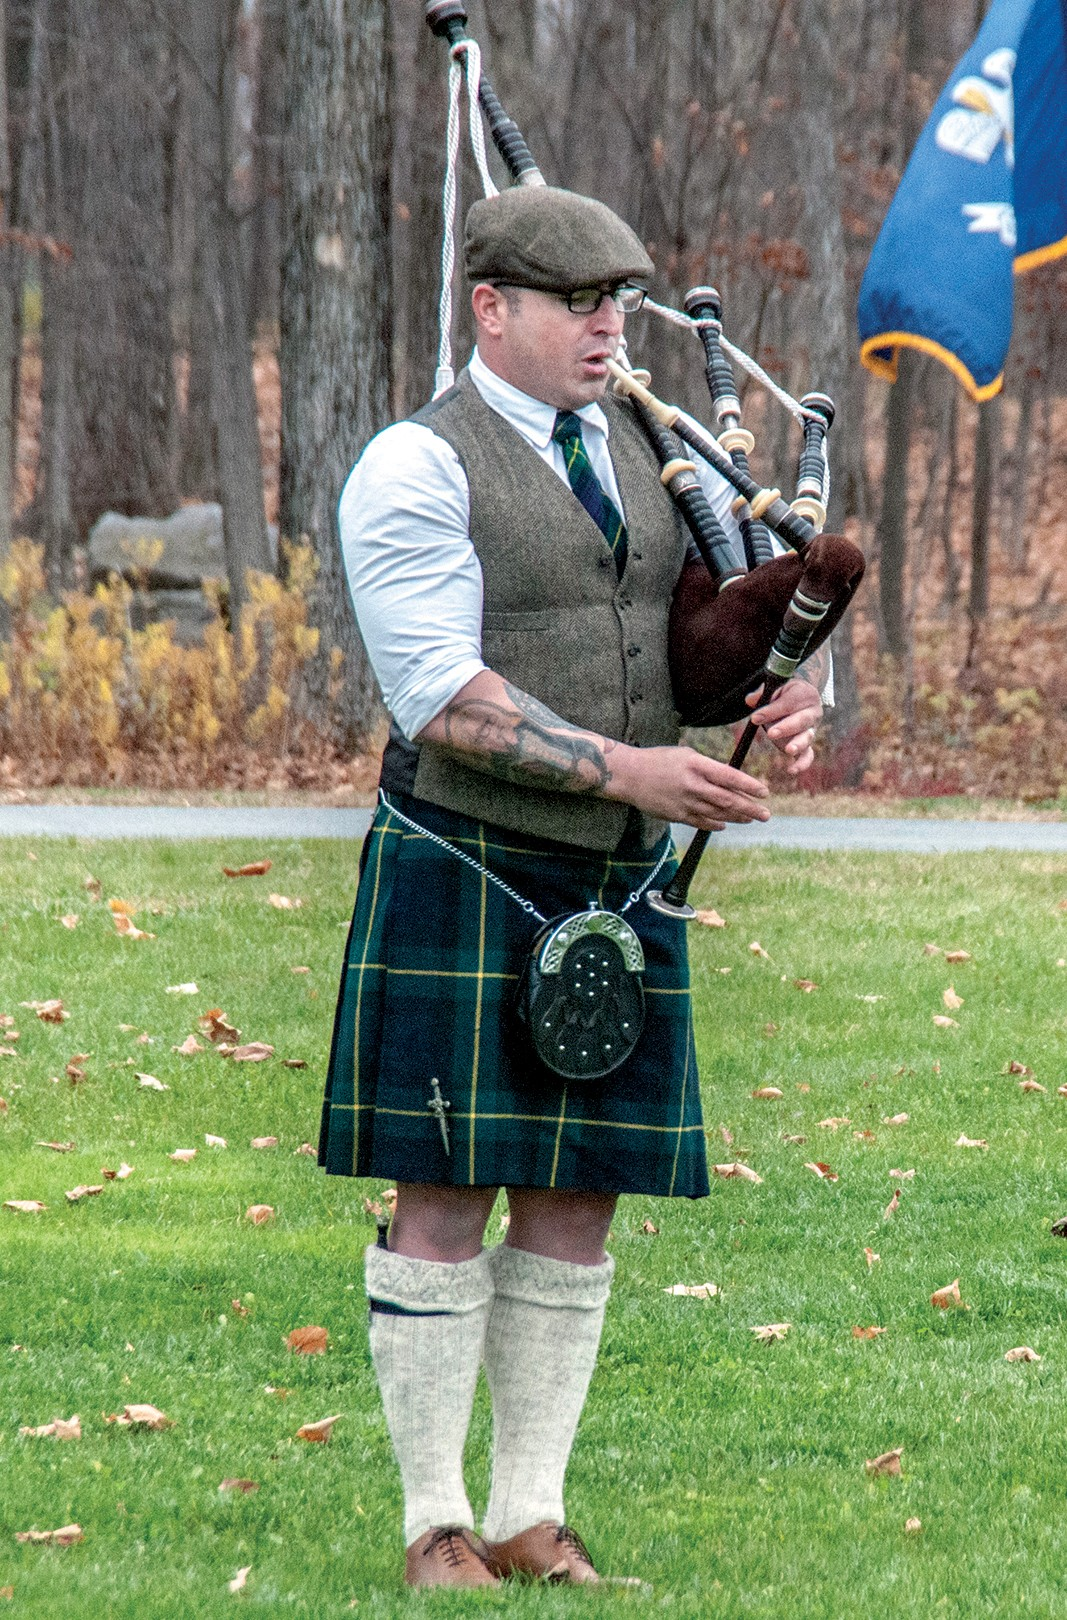 Former punk rocker, Irish bagpipe talent brings unique flair